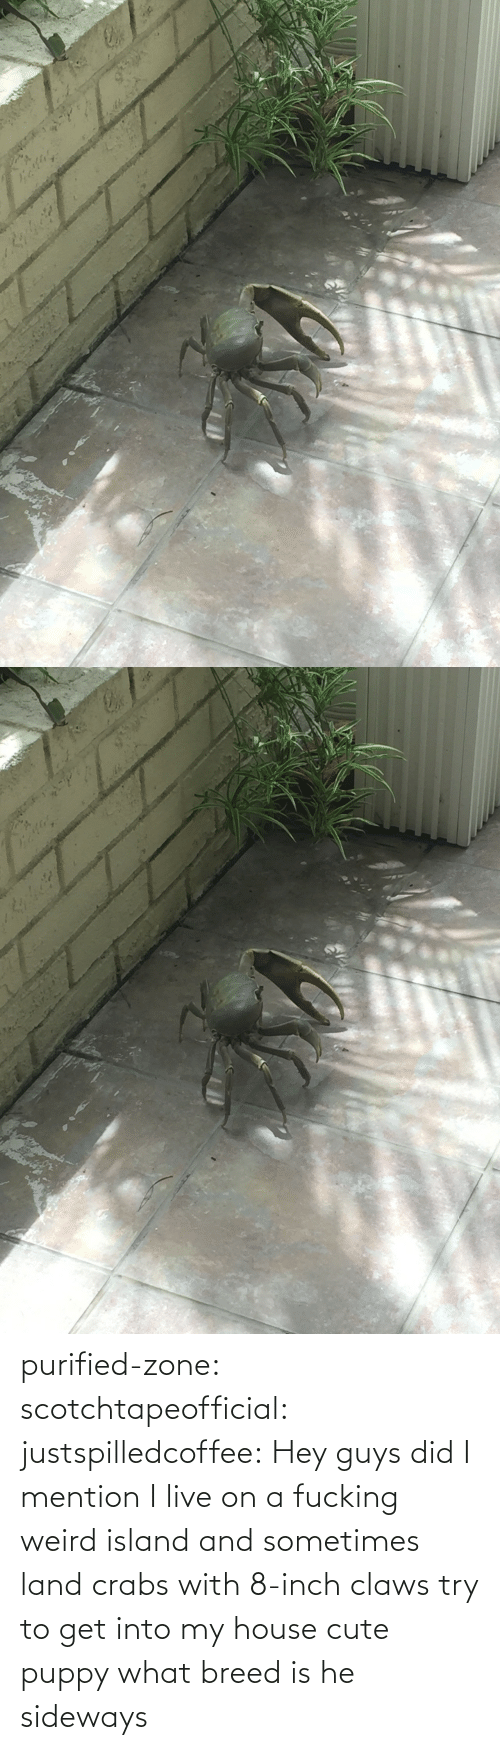 zone: purified-zone: scotchtapeofficial:  justspilledcoffee:  Hey guys did I mention I live on a fucking weird island and sometimes land crabs with 8-inch claws try to get into my house  cute puppy what breed is he  sideways